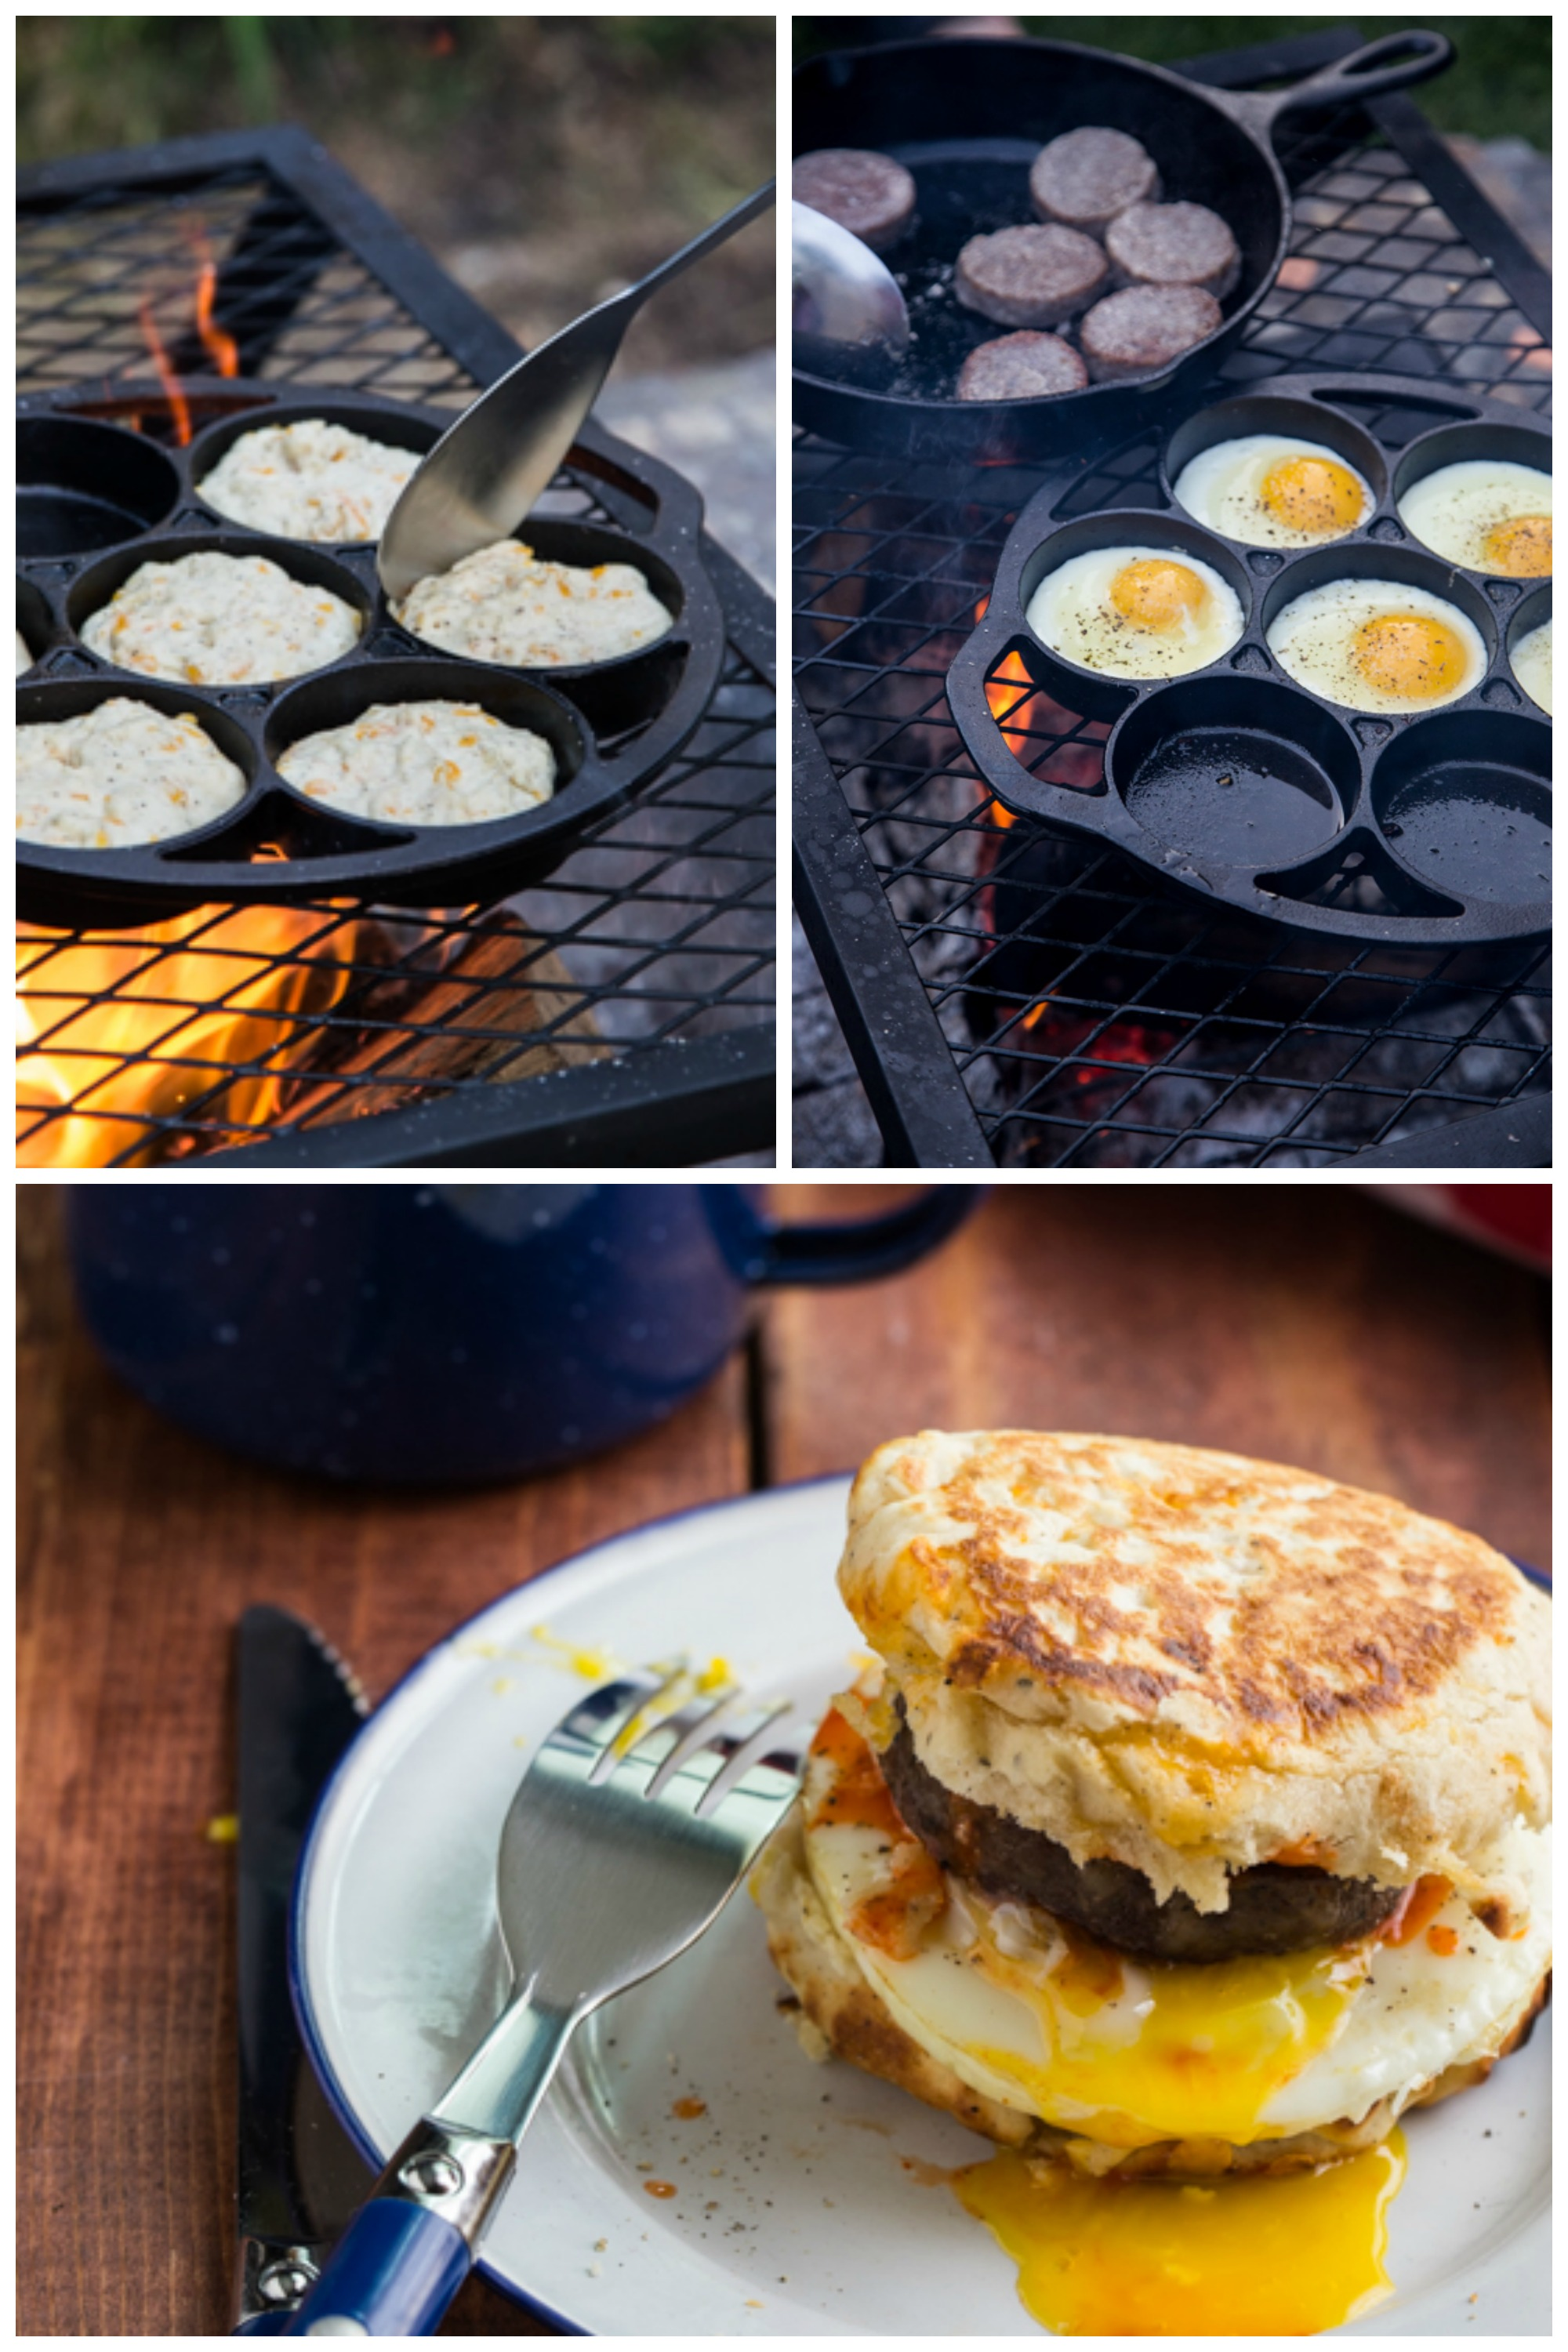 attractive meals for camping Part - 9: attractive meals for camping pictures gallery